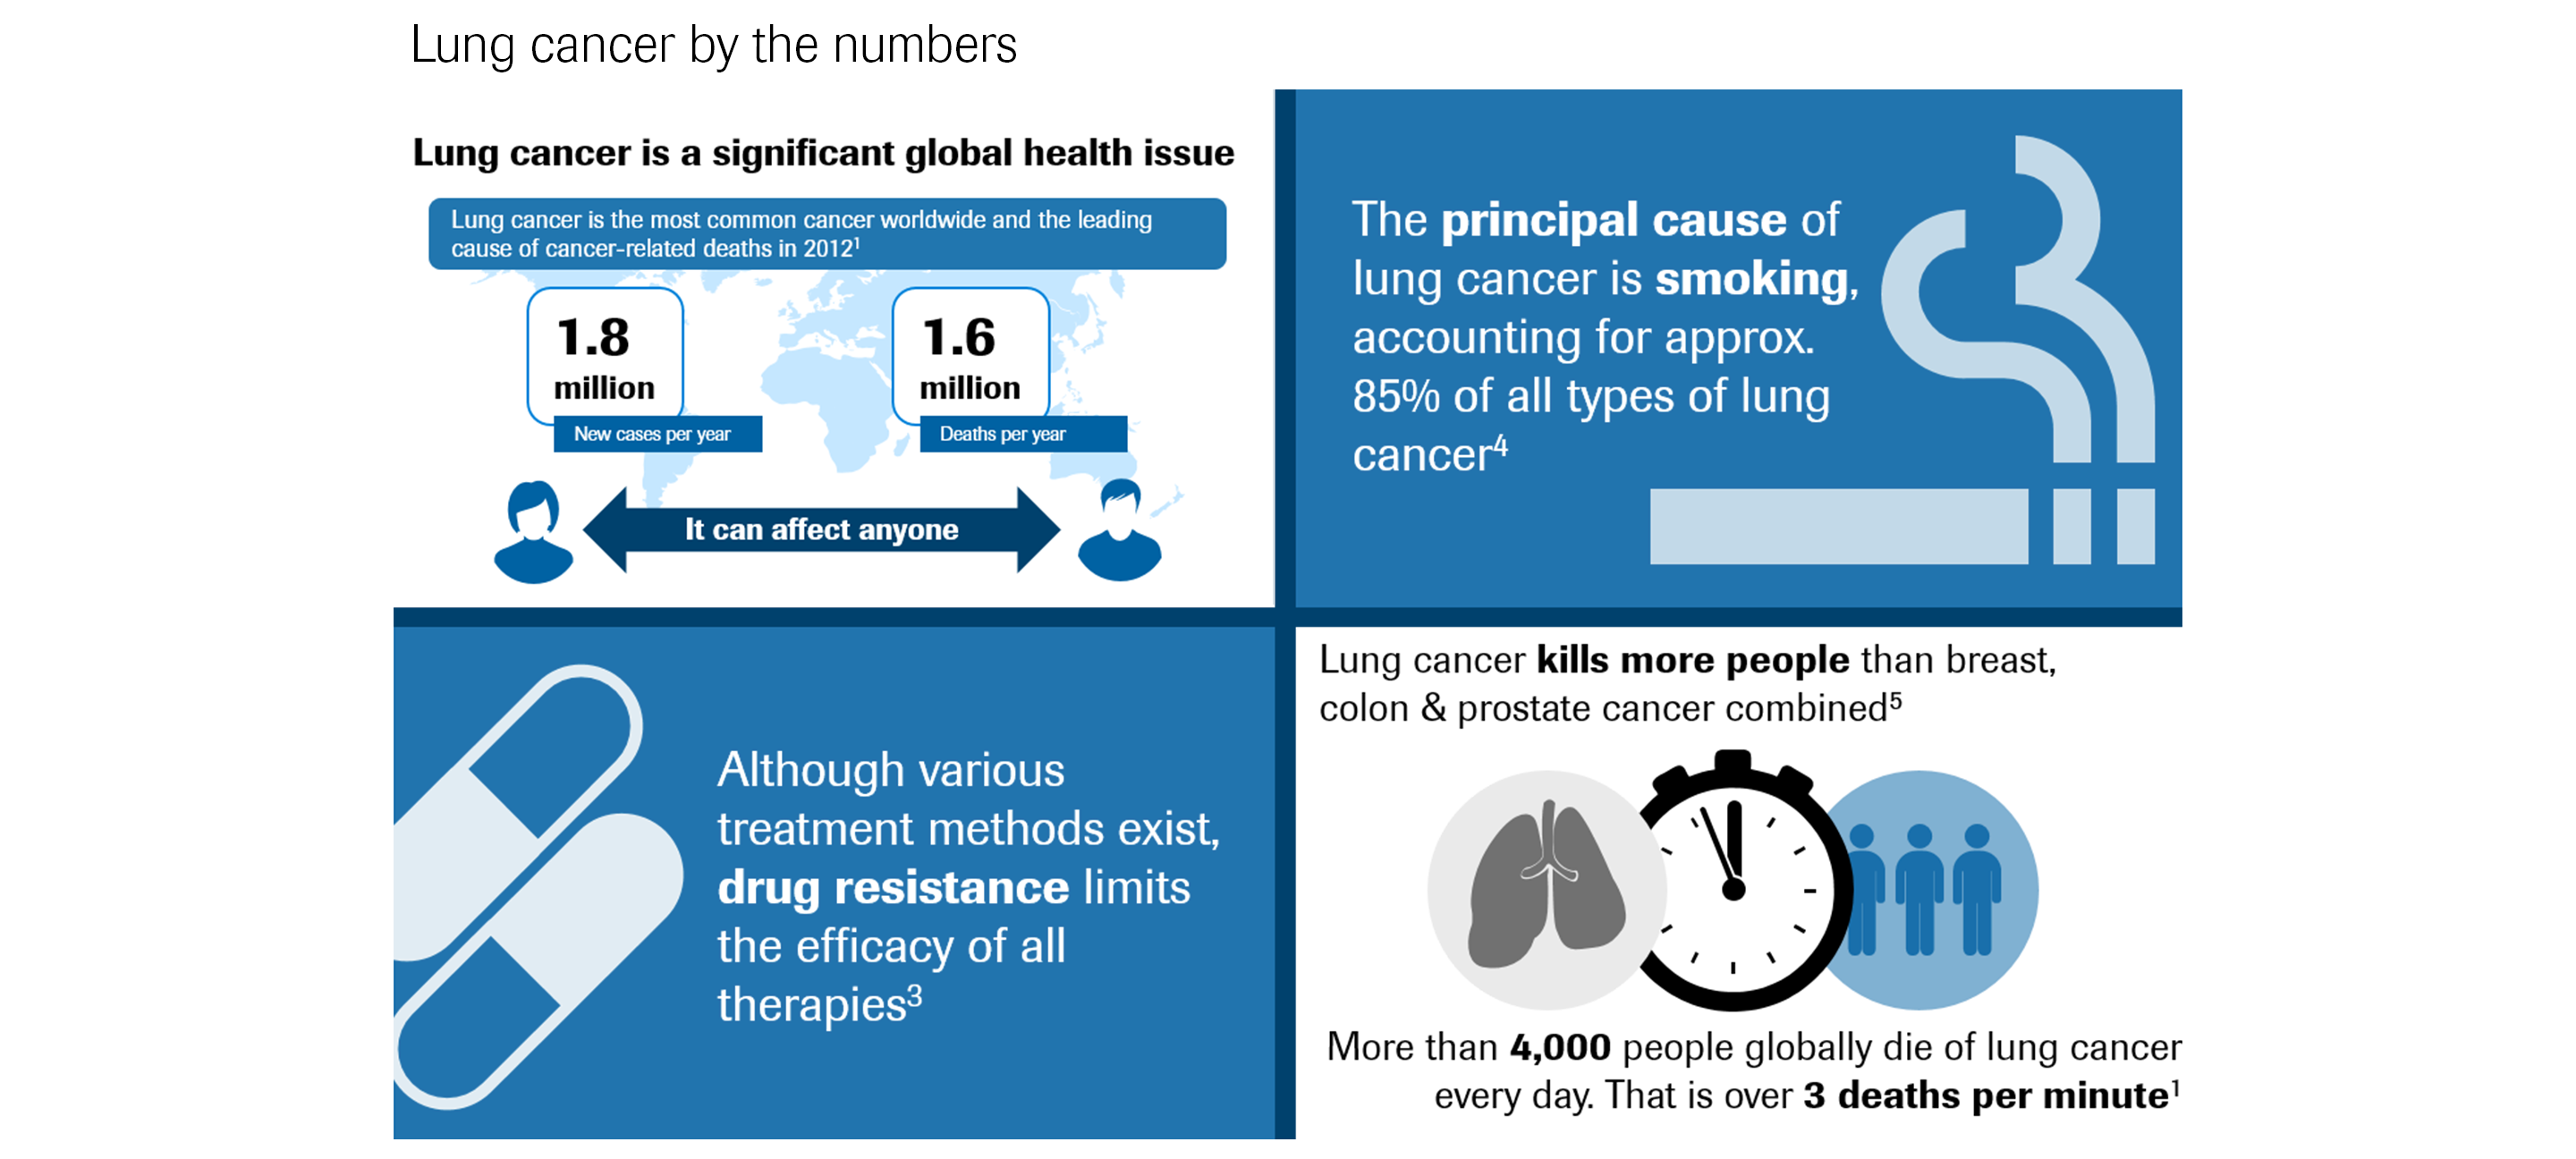 NSCLC lung cancer by the numbers